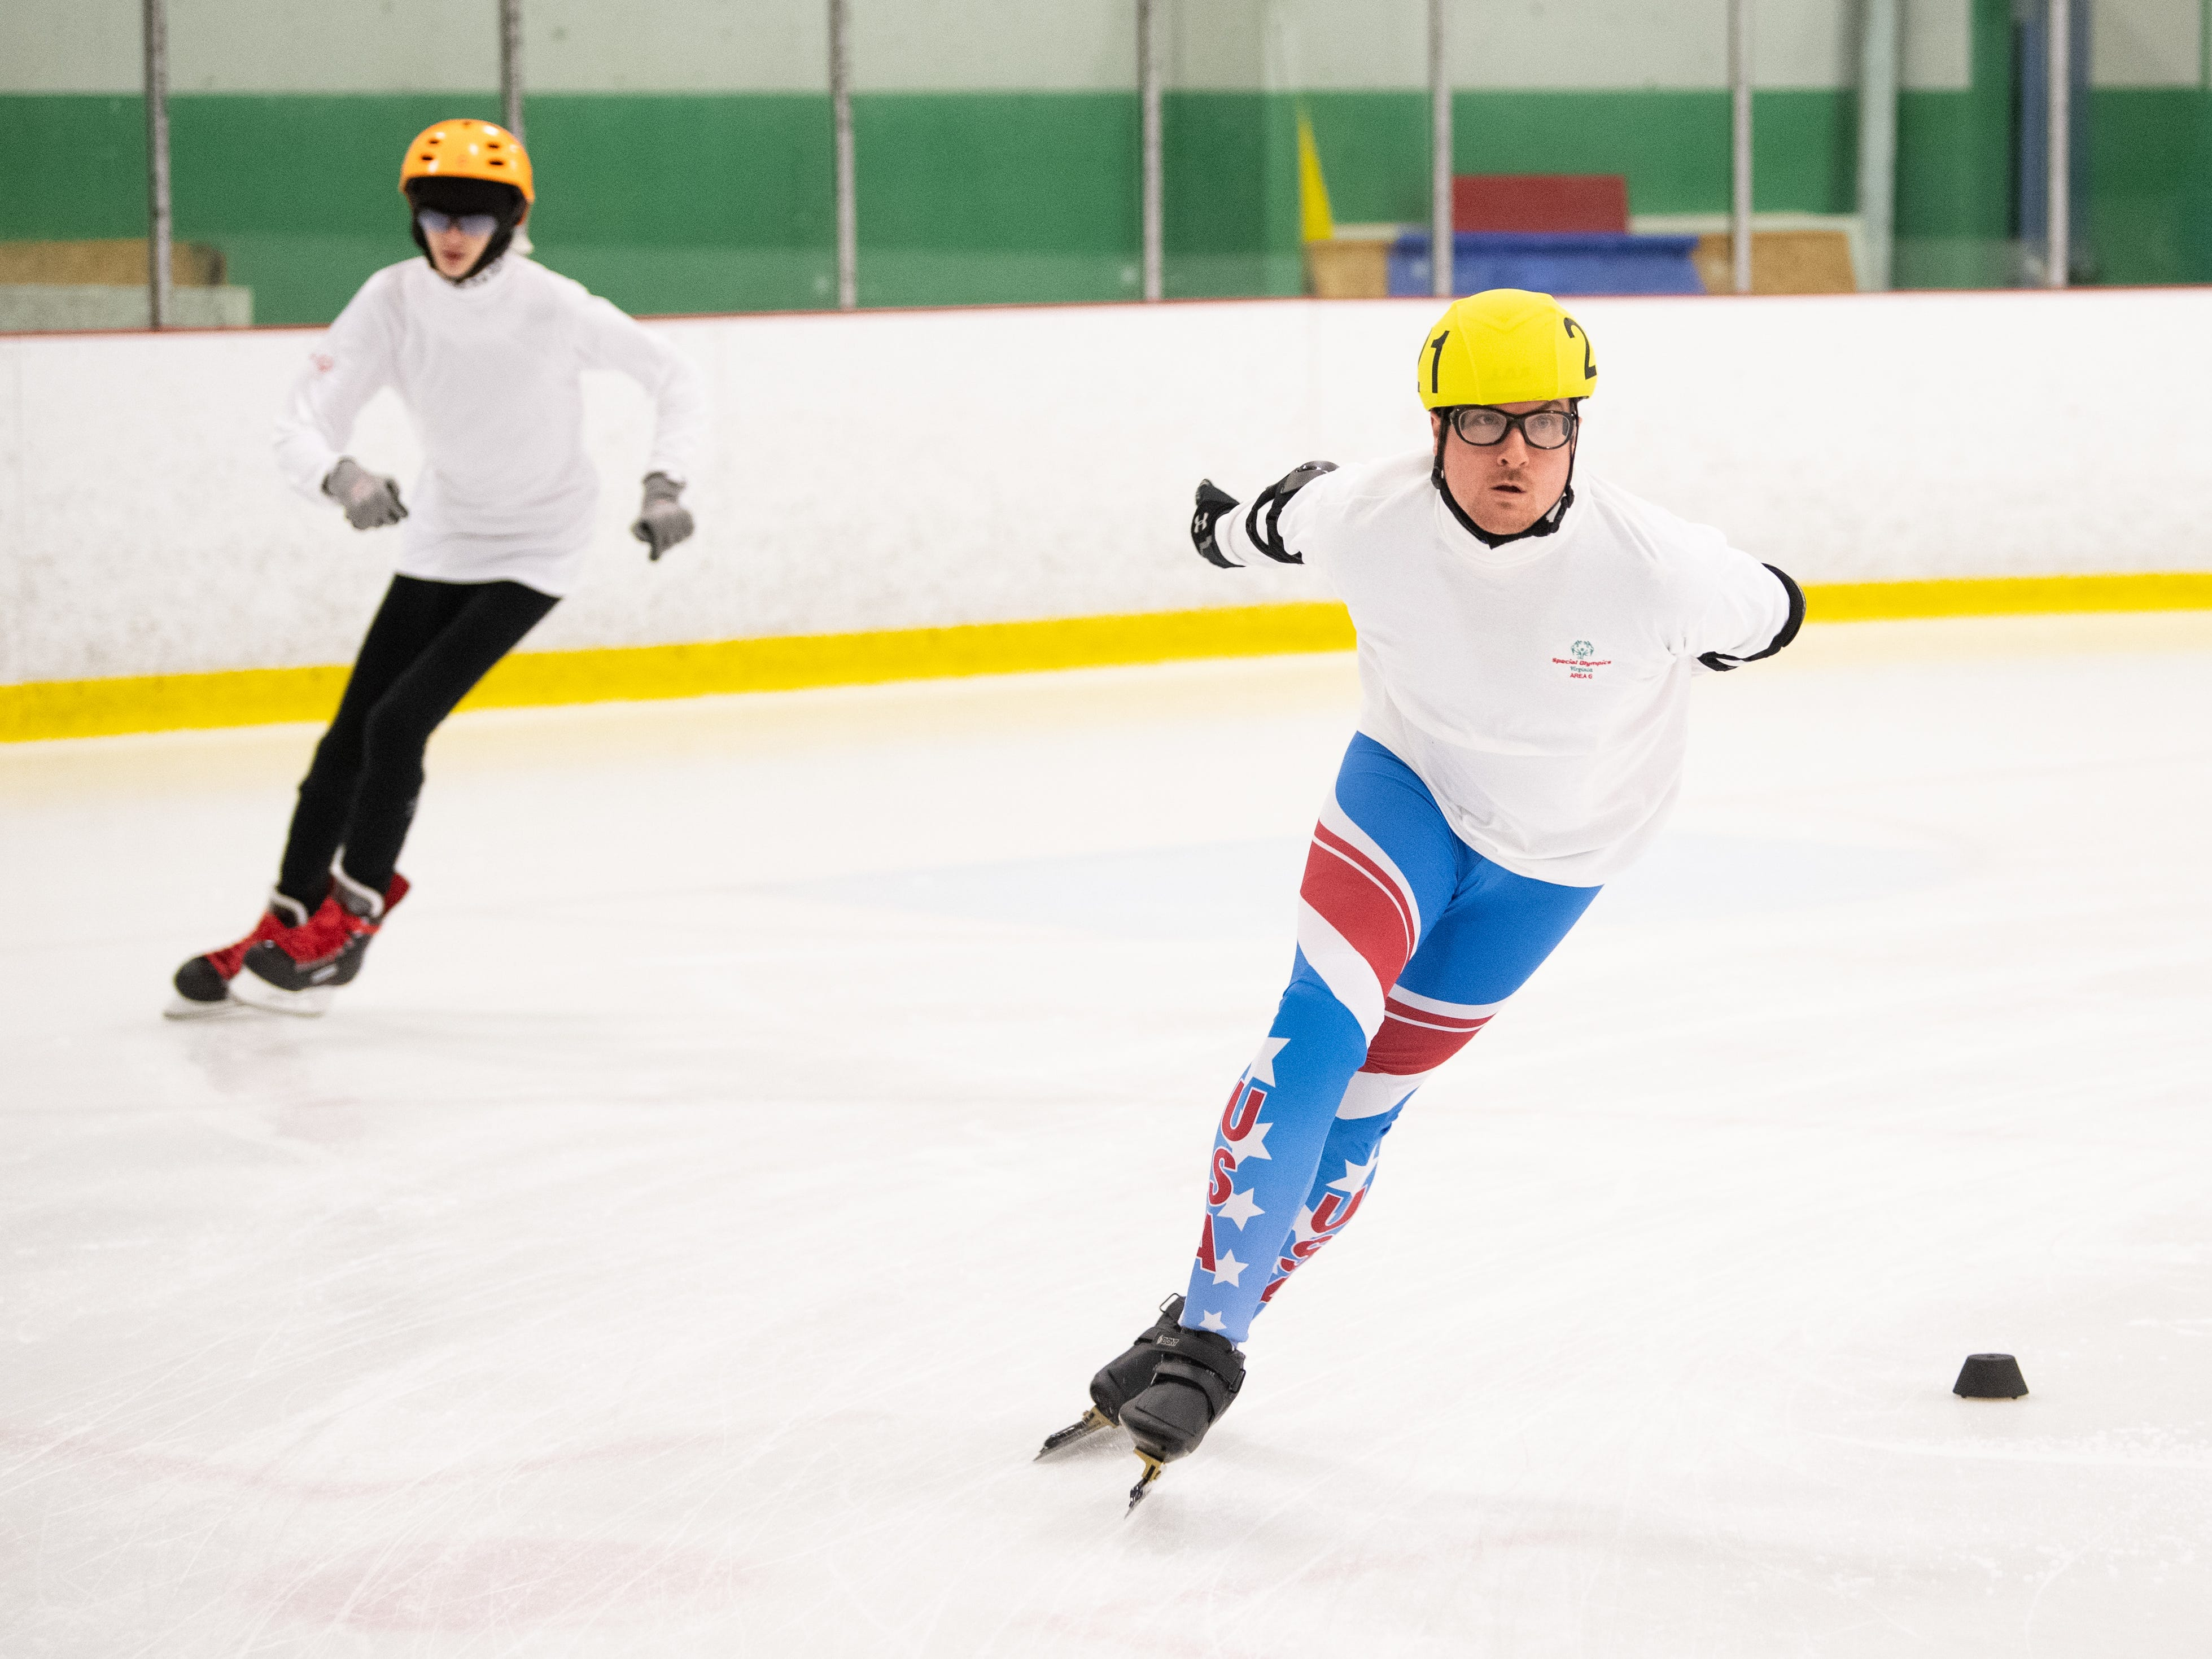 Special Olympic athletes compete in the speed skating preliminaries during the Pennsylvania Indoor Winter Games, March 2, 2019.